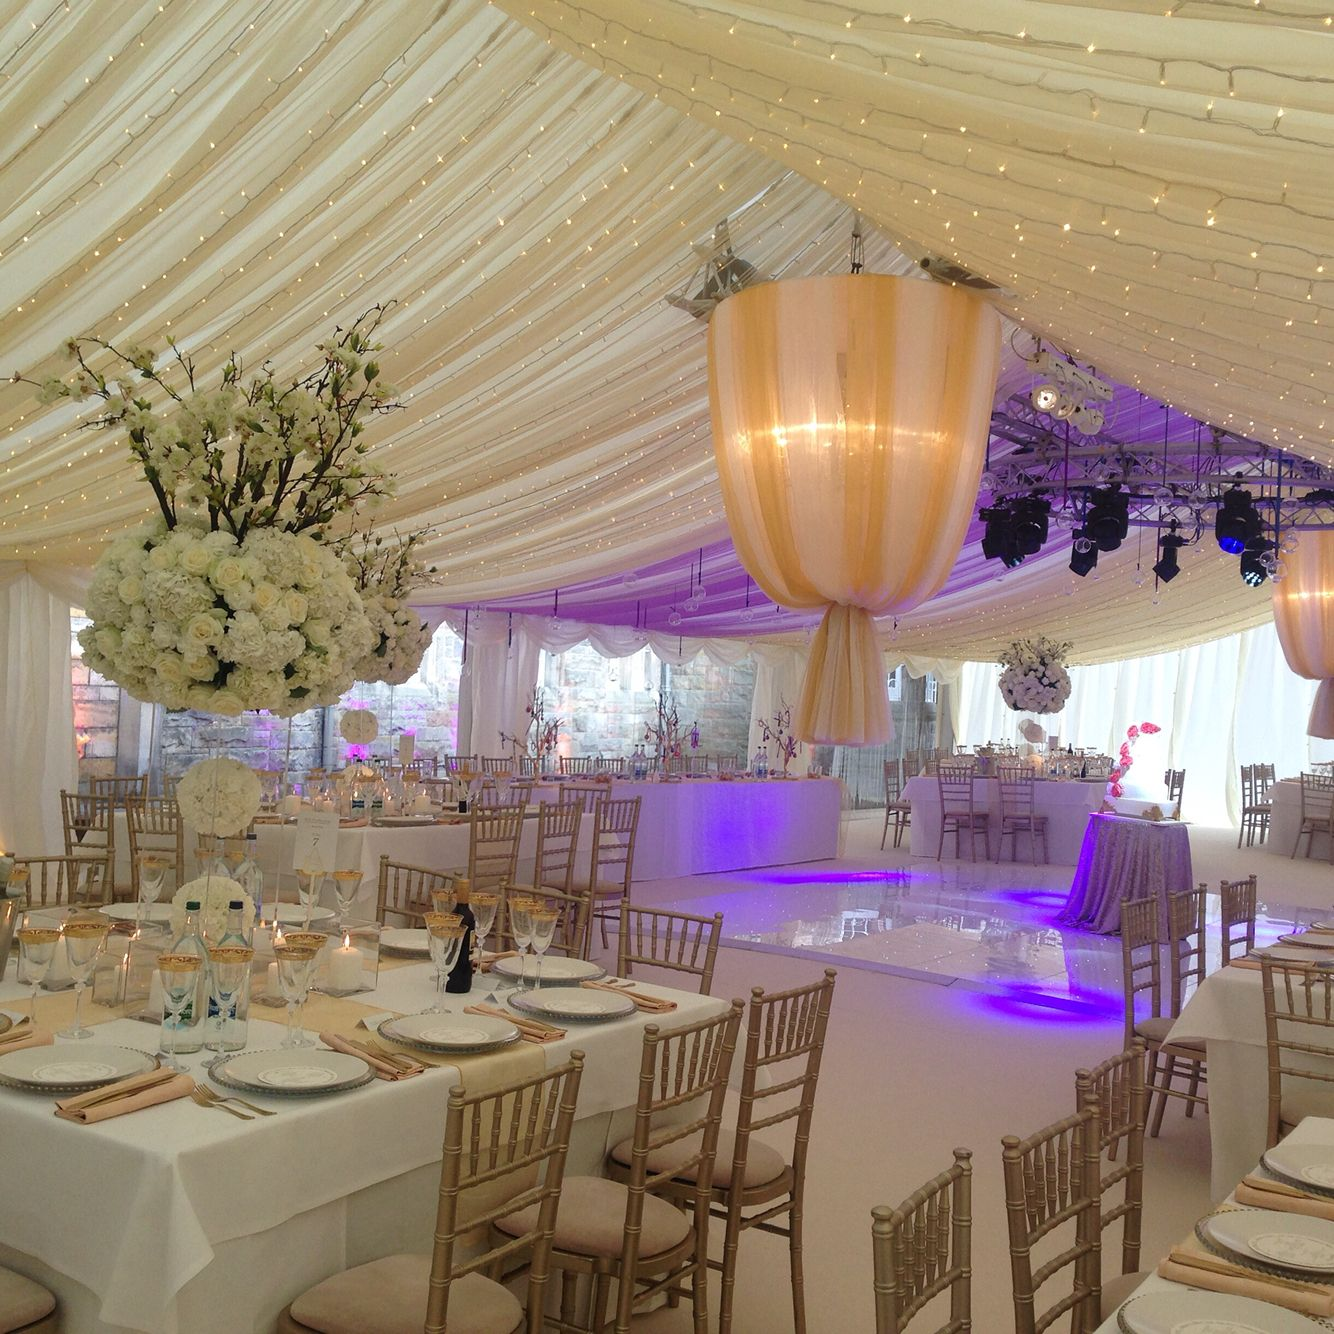 A gorgeous wedding marquee wedding bestintentmarquees marquee a gorgeous wedding marquee junglespirit Image collections